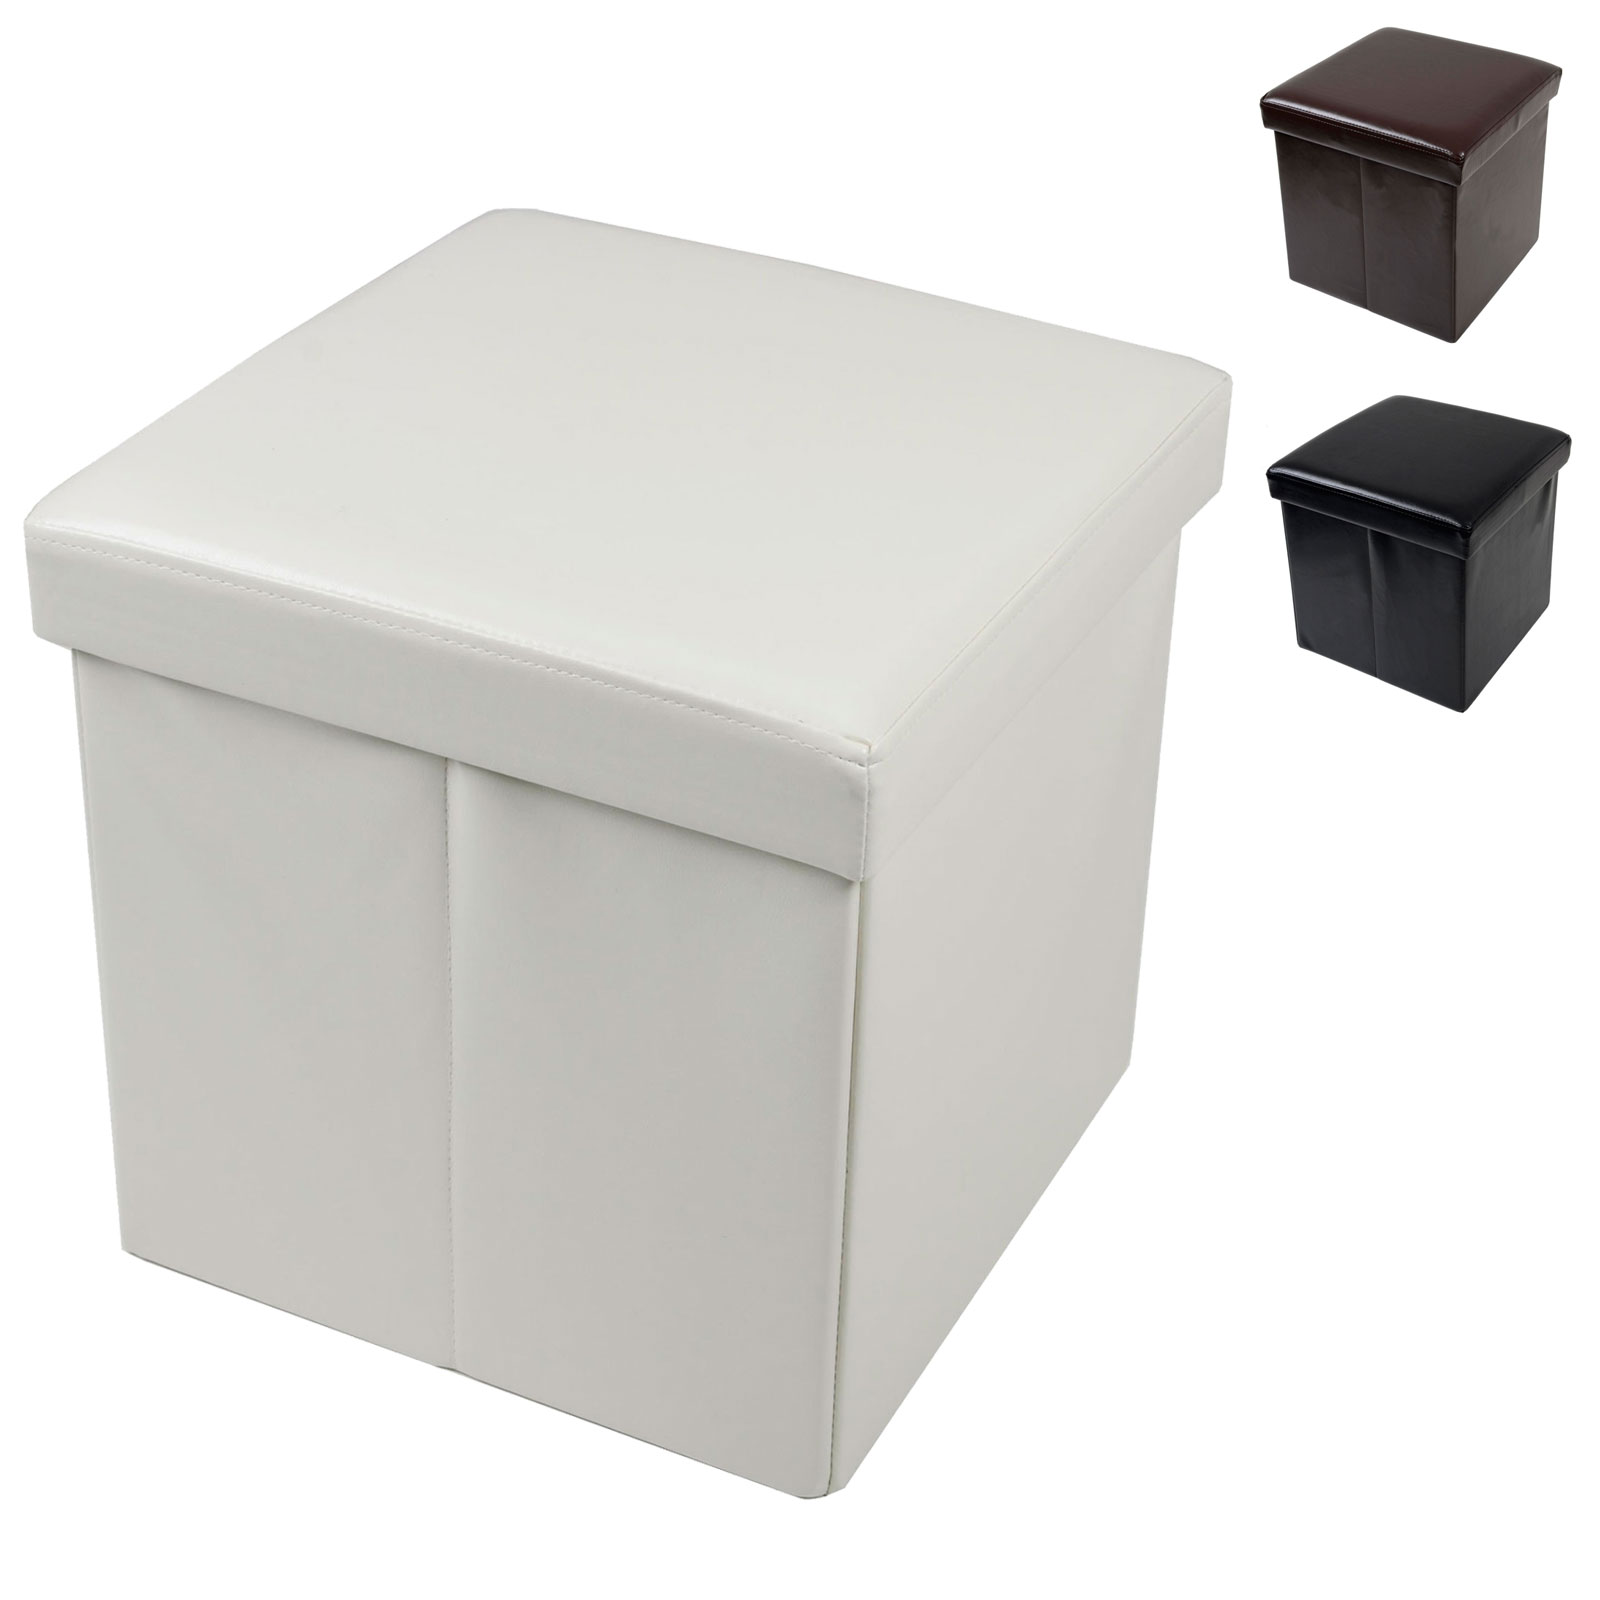 Masters Cube Storage Folding Storage Stool With Lid Faux Leather 37cm Cube Box